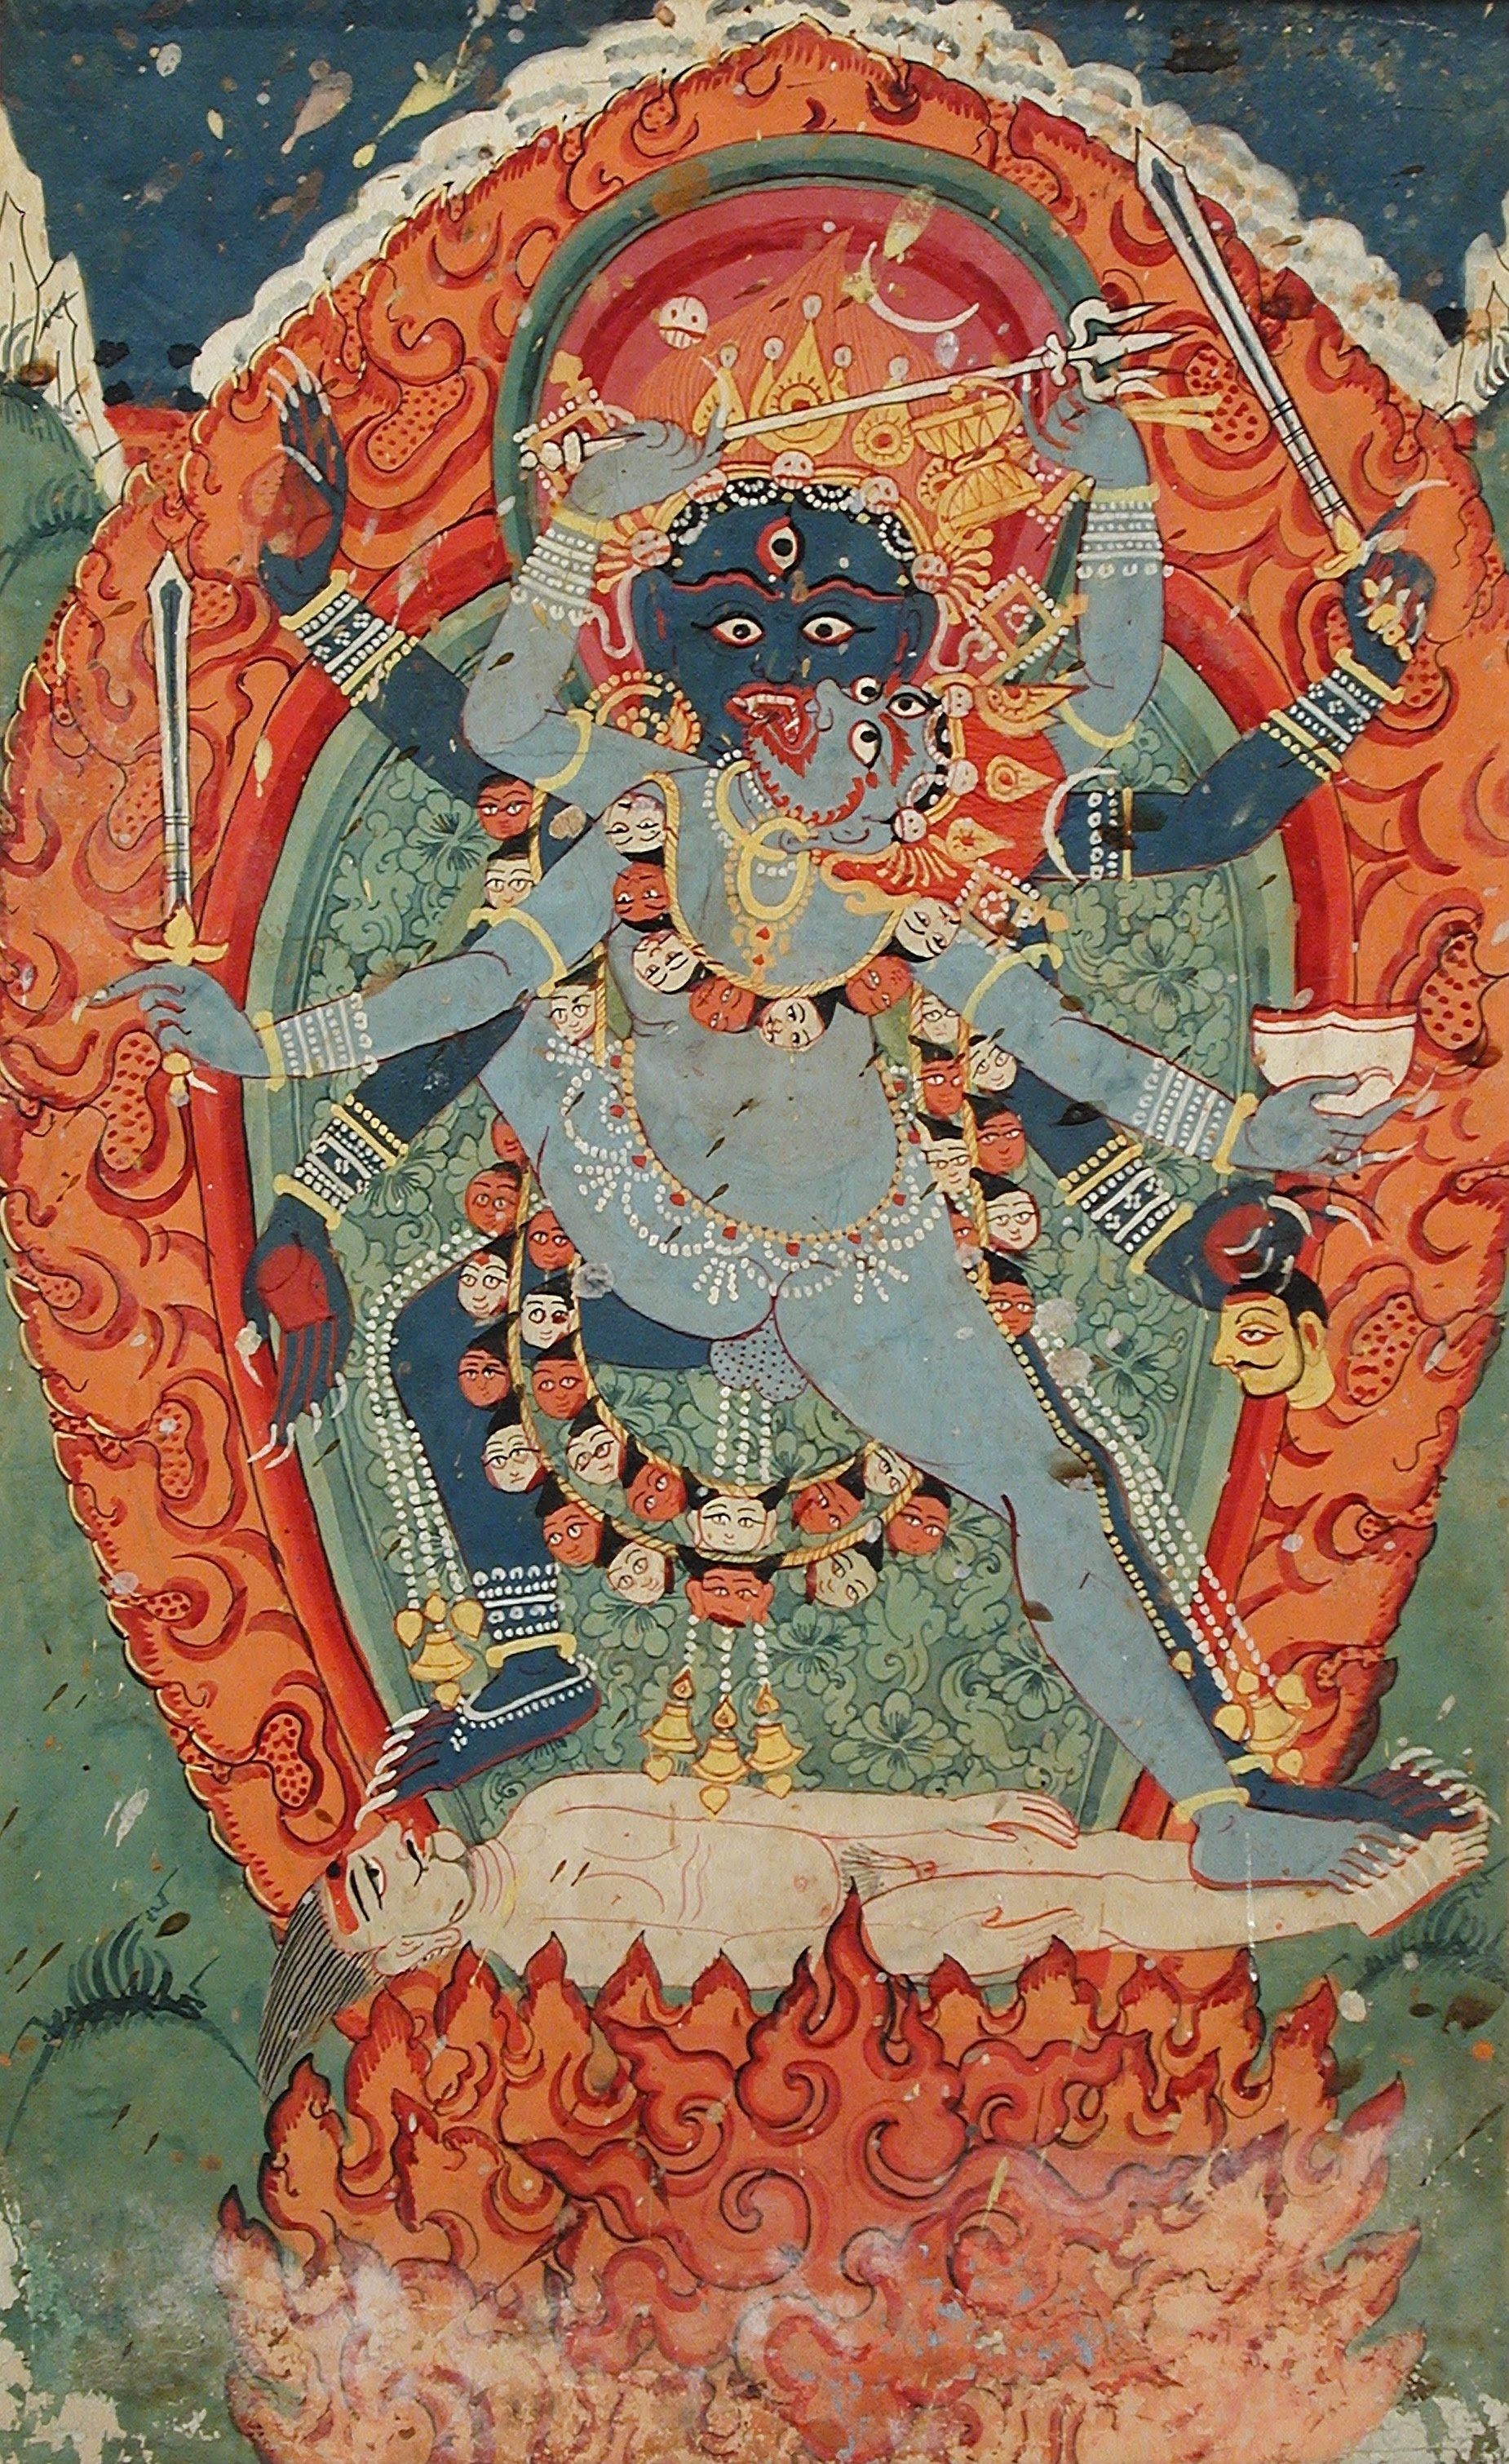 File:Kali and Bhairava in Union.jpg - Wikipedia, the free encyclopedia